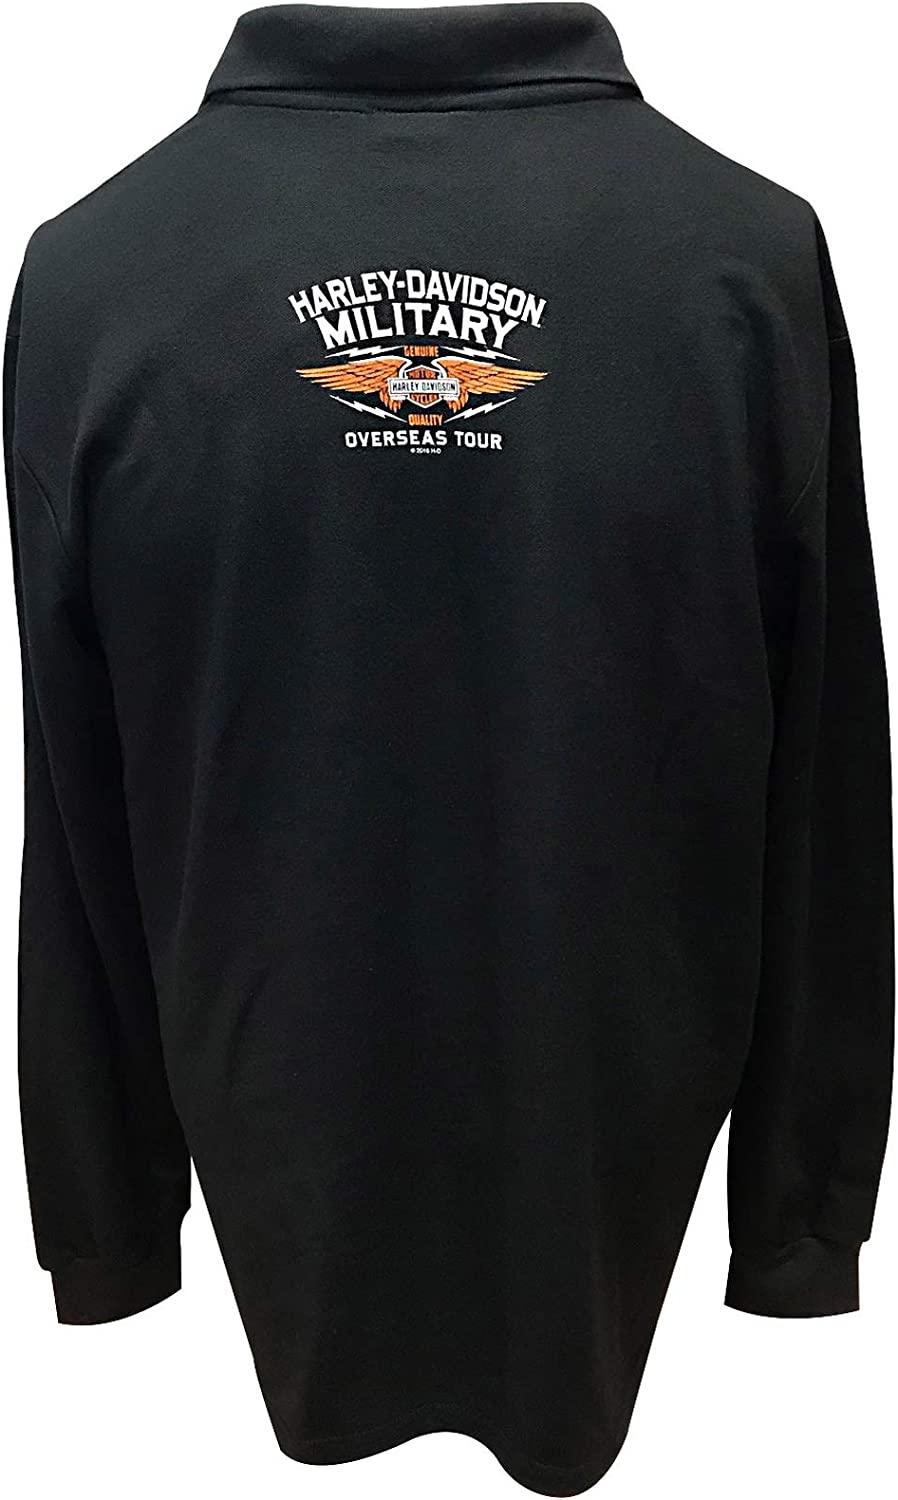 Mens Long-Sleeve Collared Sport Shirt with Front and Back Graphics Overseas Tour Eagle Polo Harley-Davidson Military